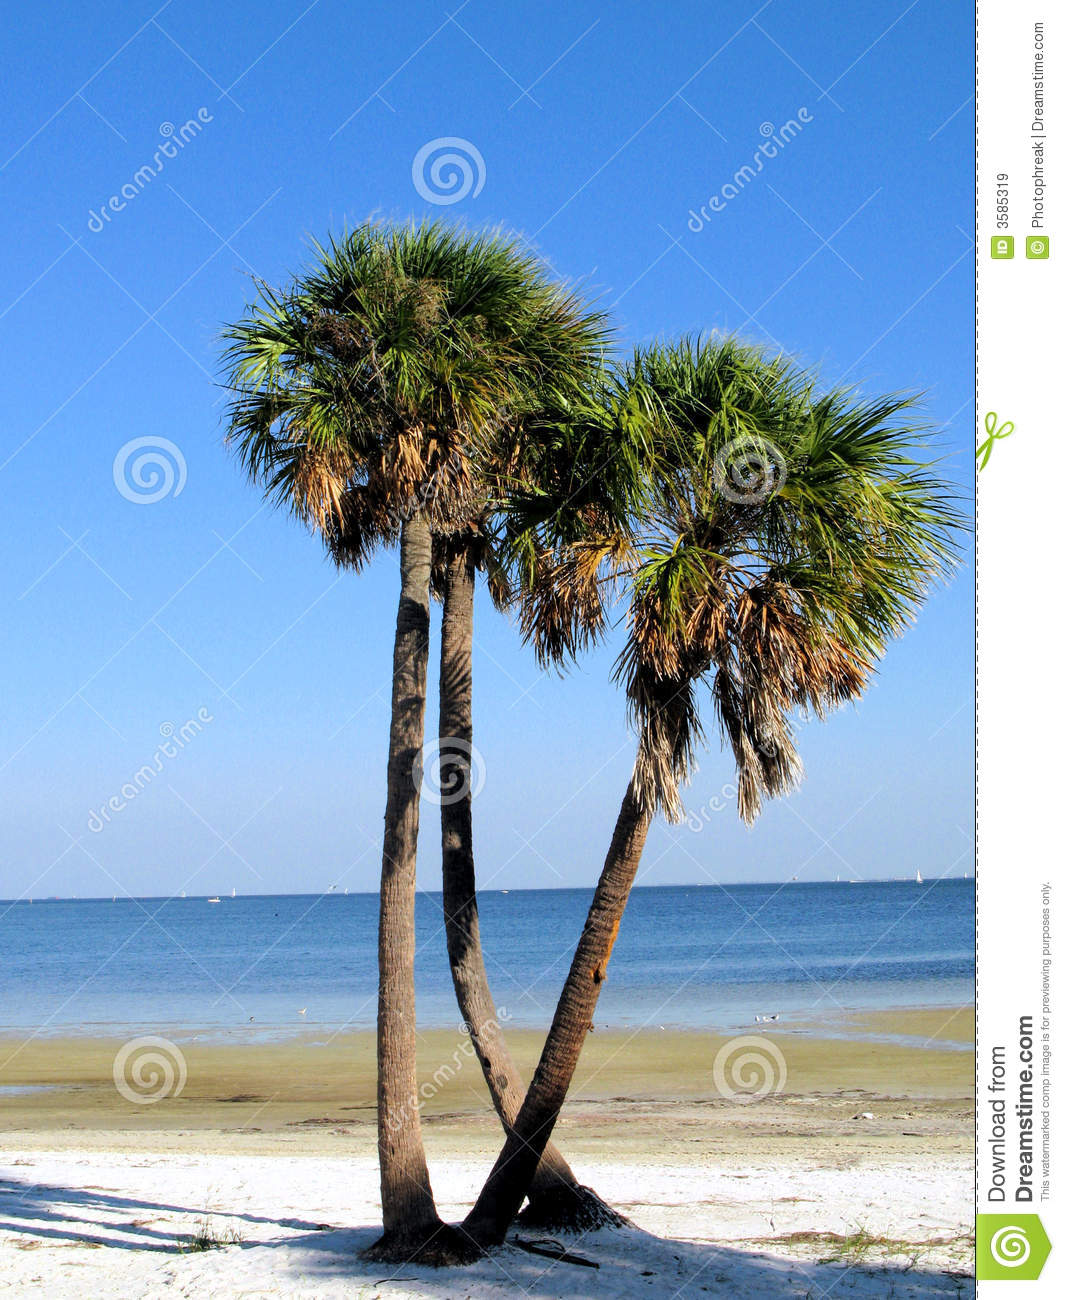 palmen auf florida strand stockbild bild von drau en. Black Bedroom Furniture Sets. Home Design Ideas